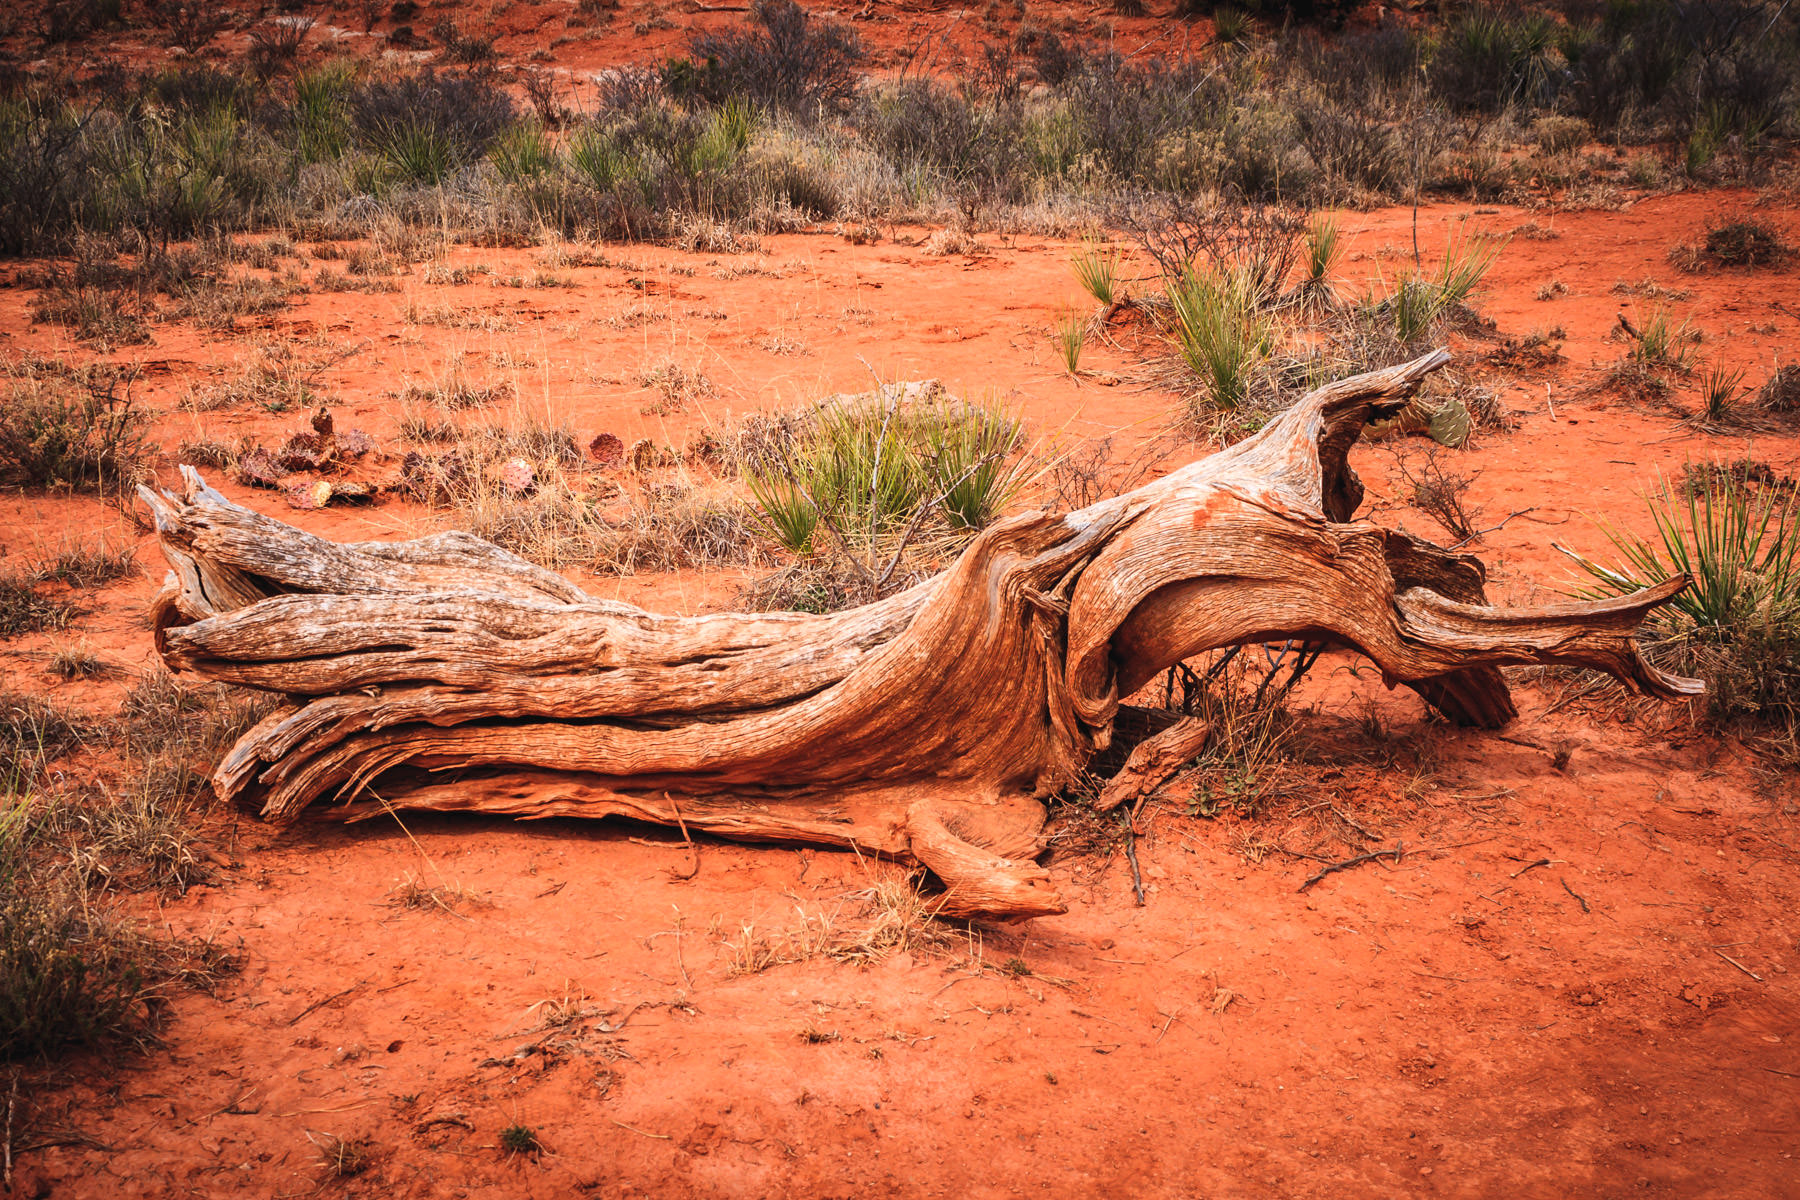 The dried and twisted remains of a tree lying at the bottom of Palo Duro Canyon, Texas.